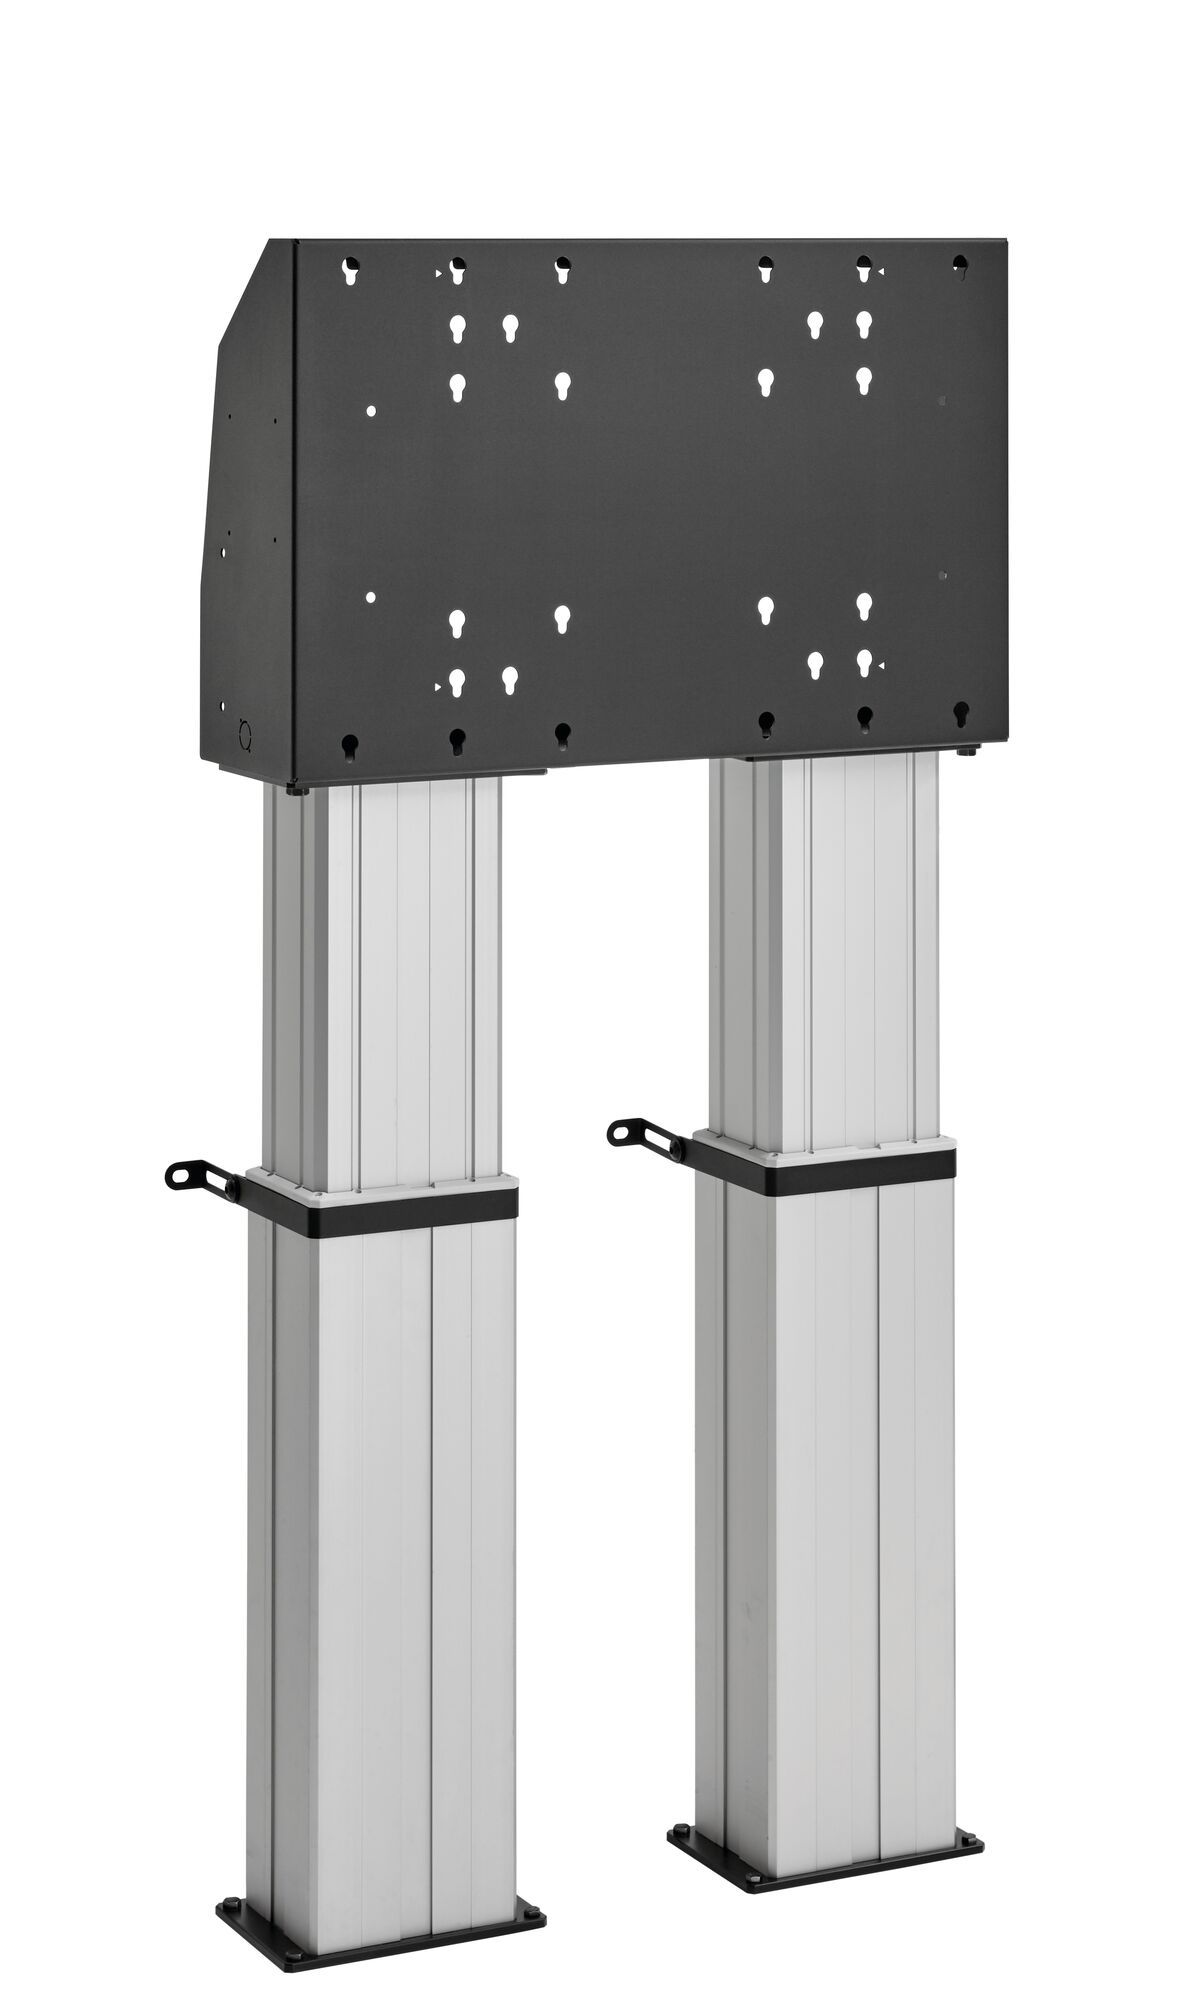 Vogel's FMDE6064 Motorized floor stand